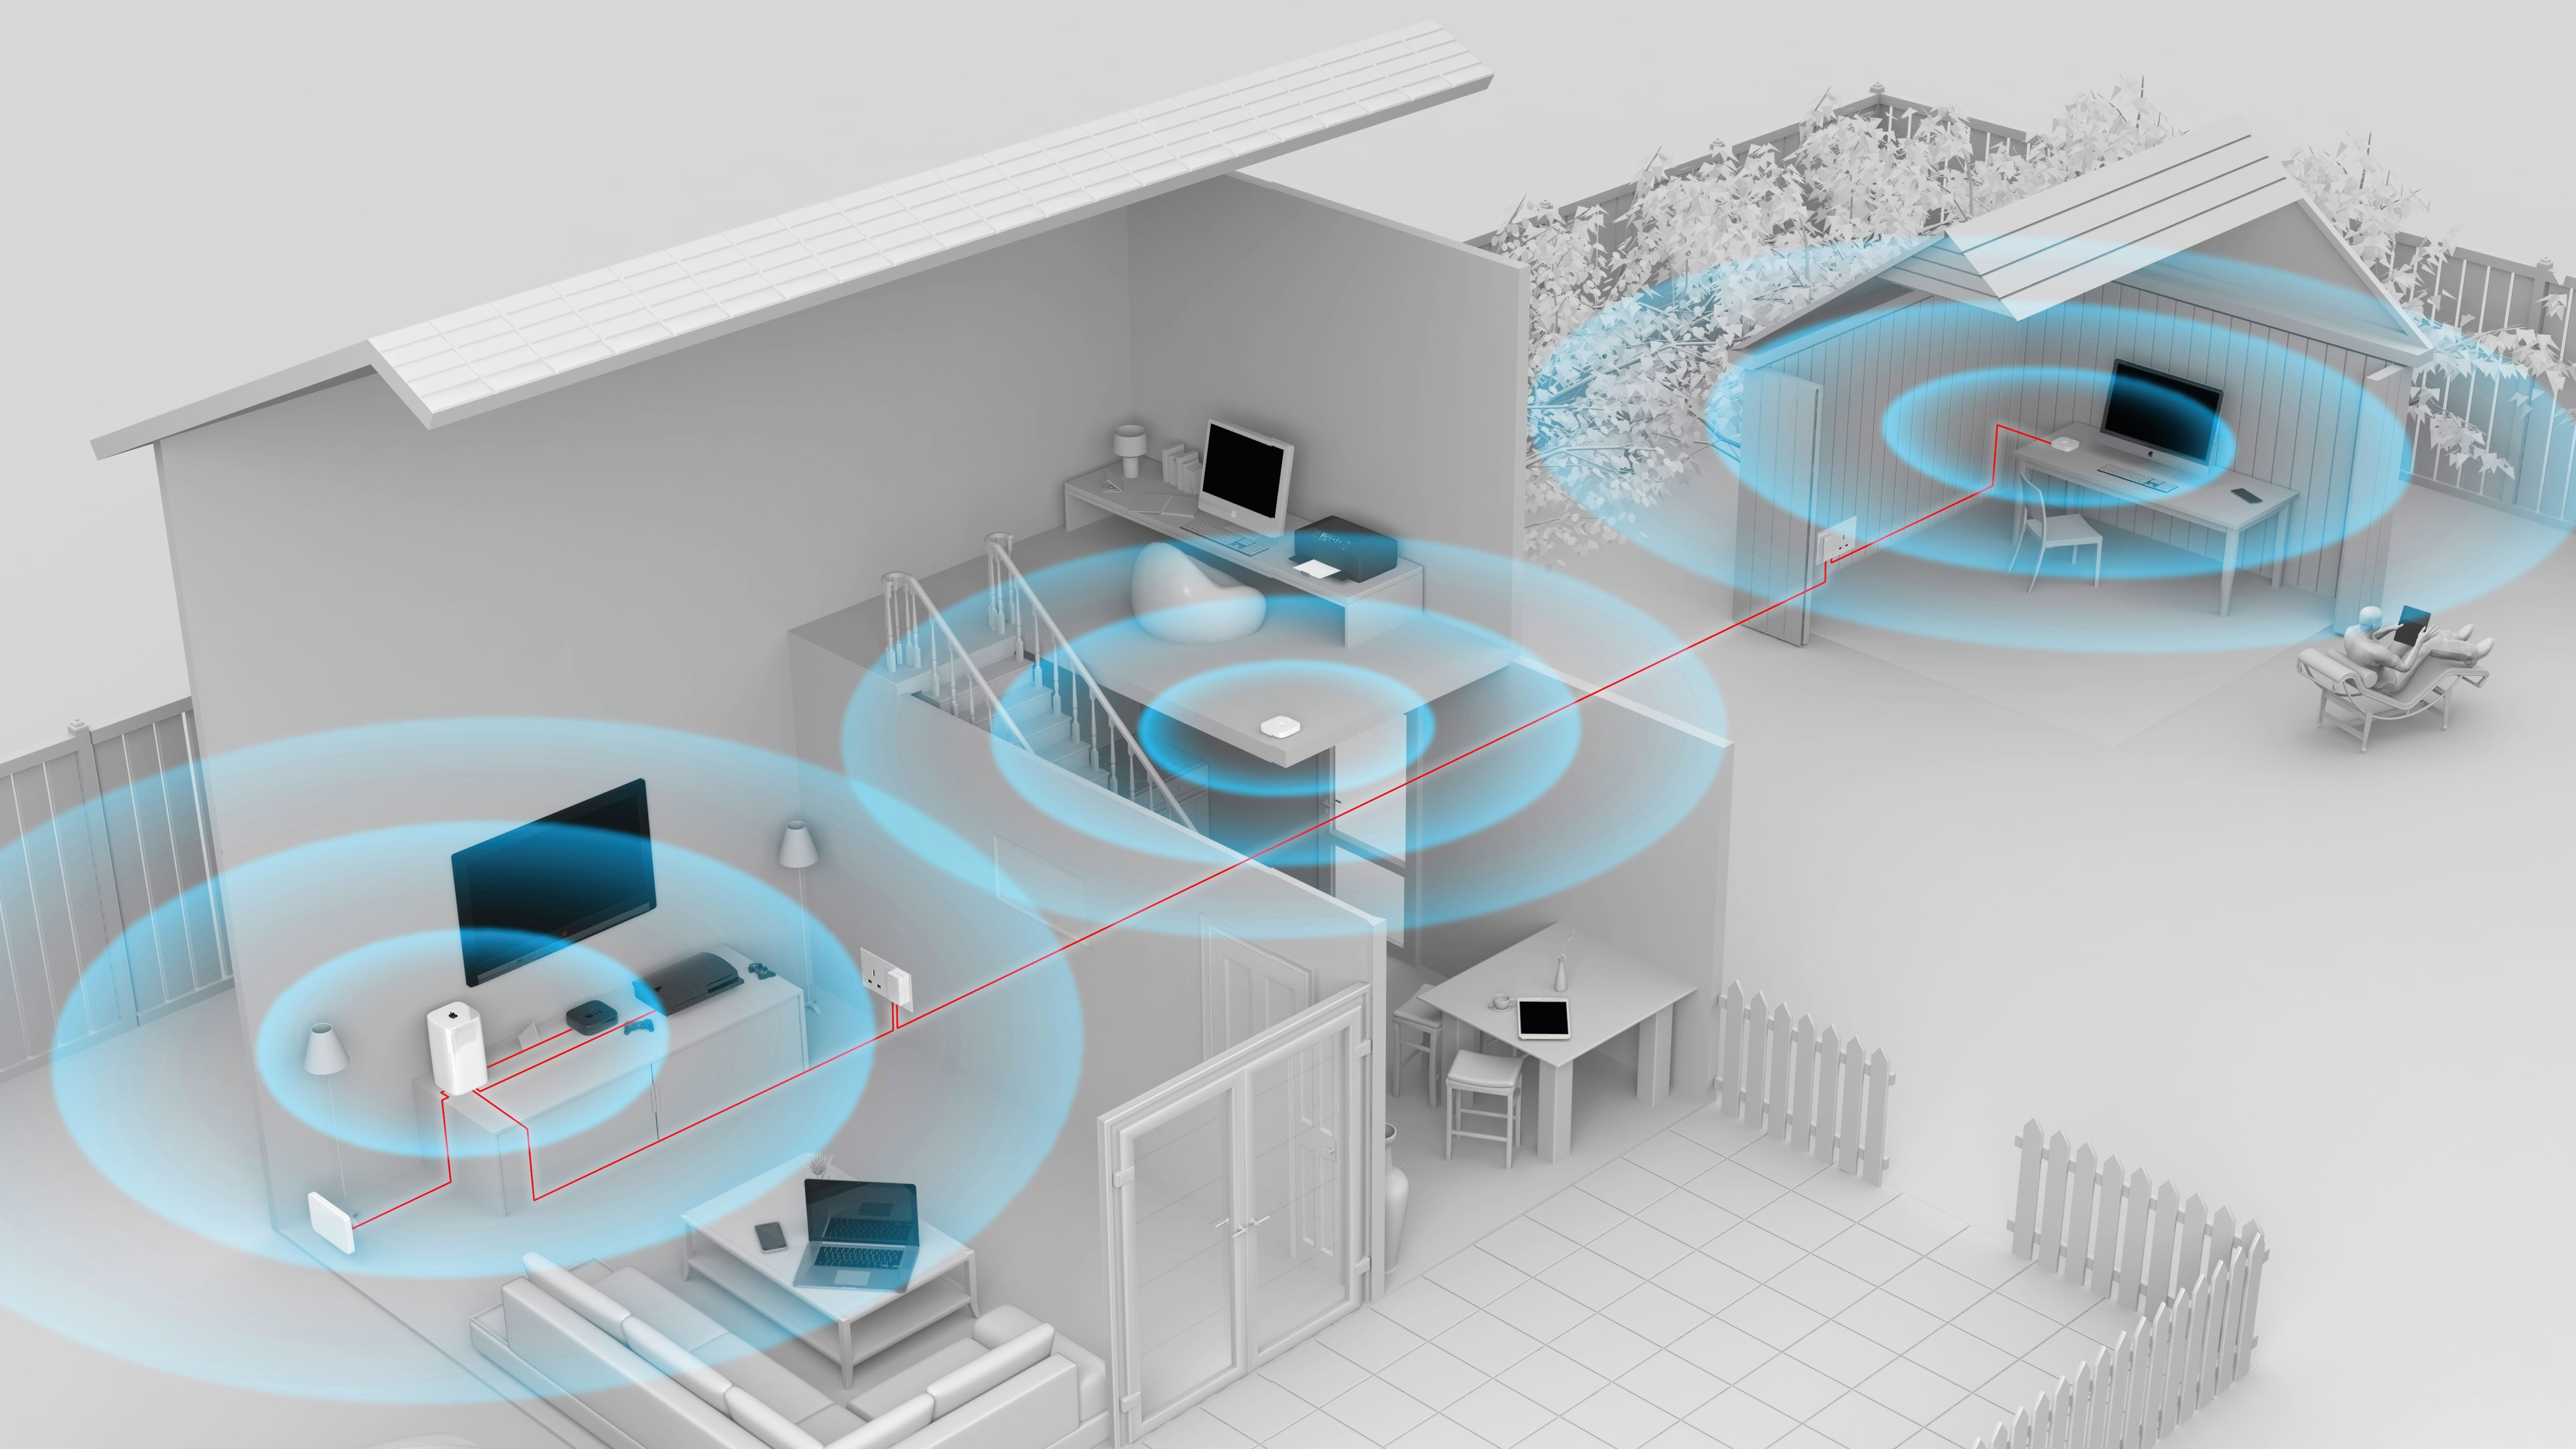 How to get super-fast Wi-Fi in every room | TechRadar